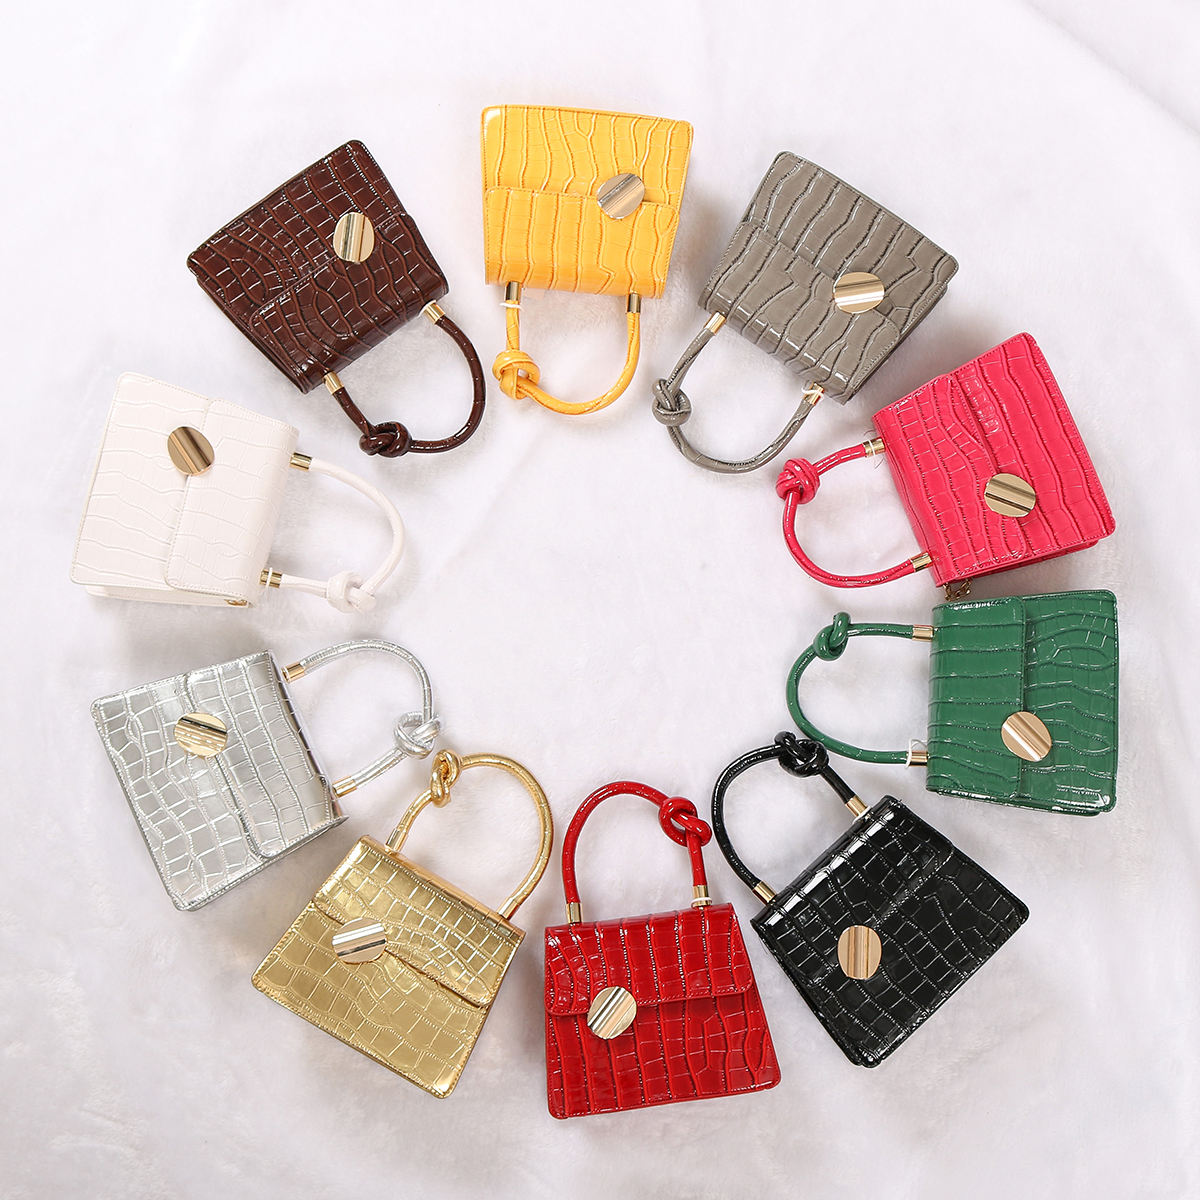 6030 New arrived Guangzhou wholesale bags market hot sale cheap price single shoulder handbags